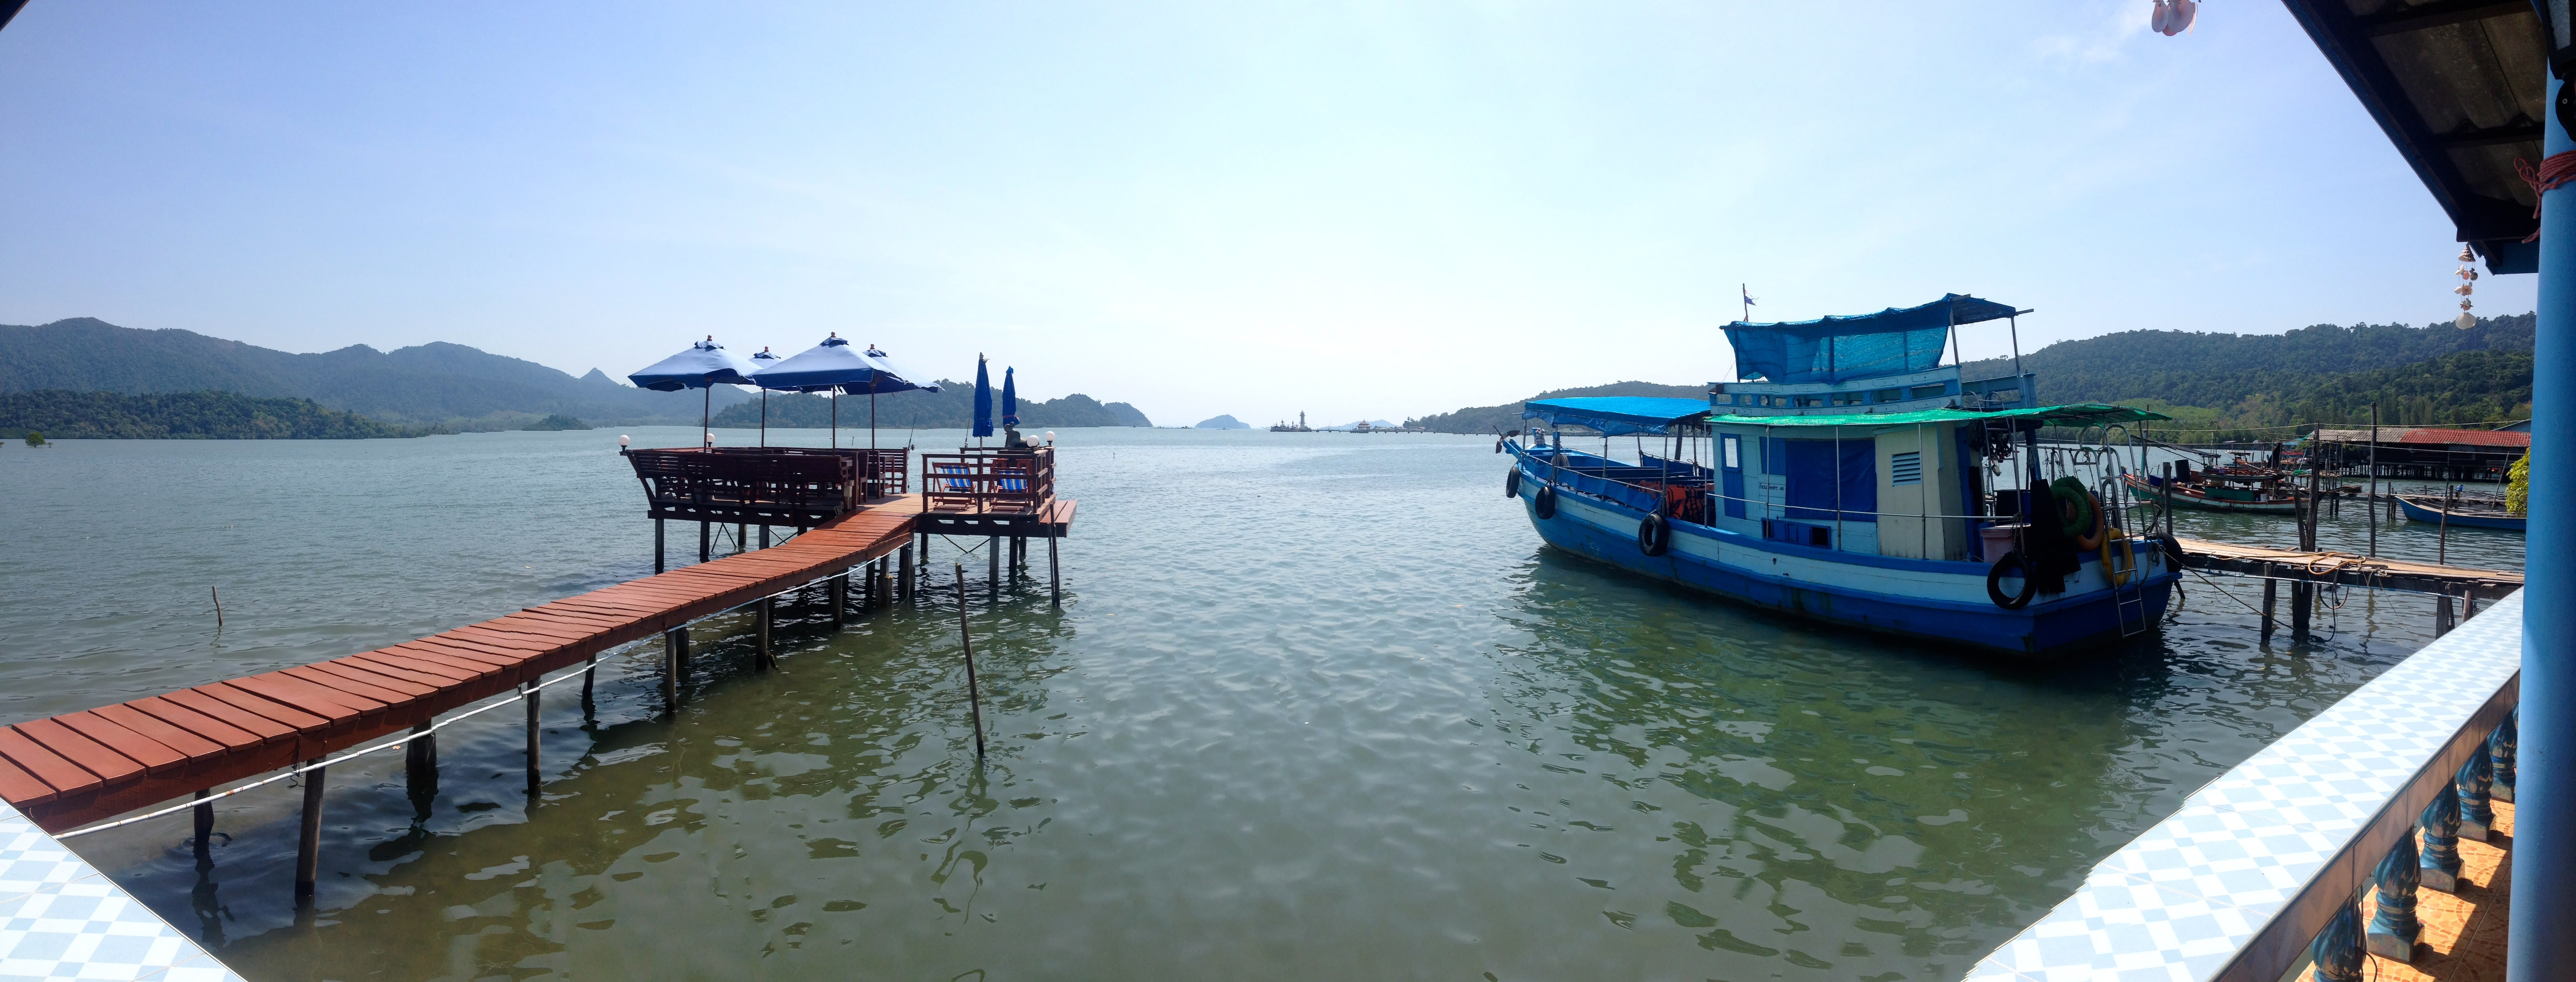 fishing_village_koh_chang.jpg